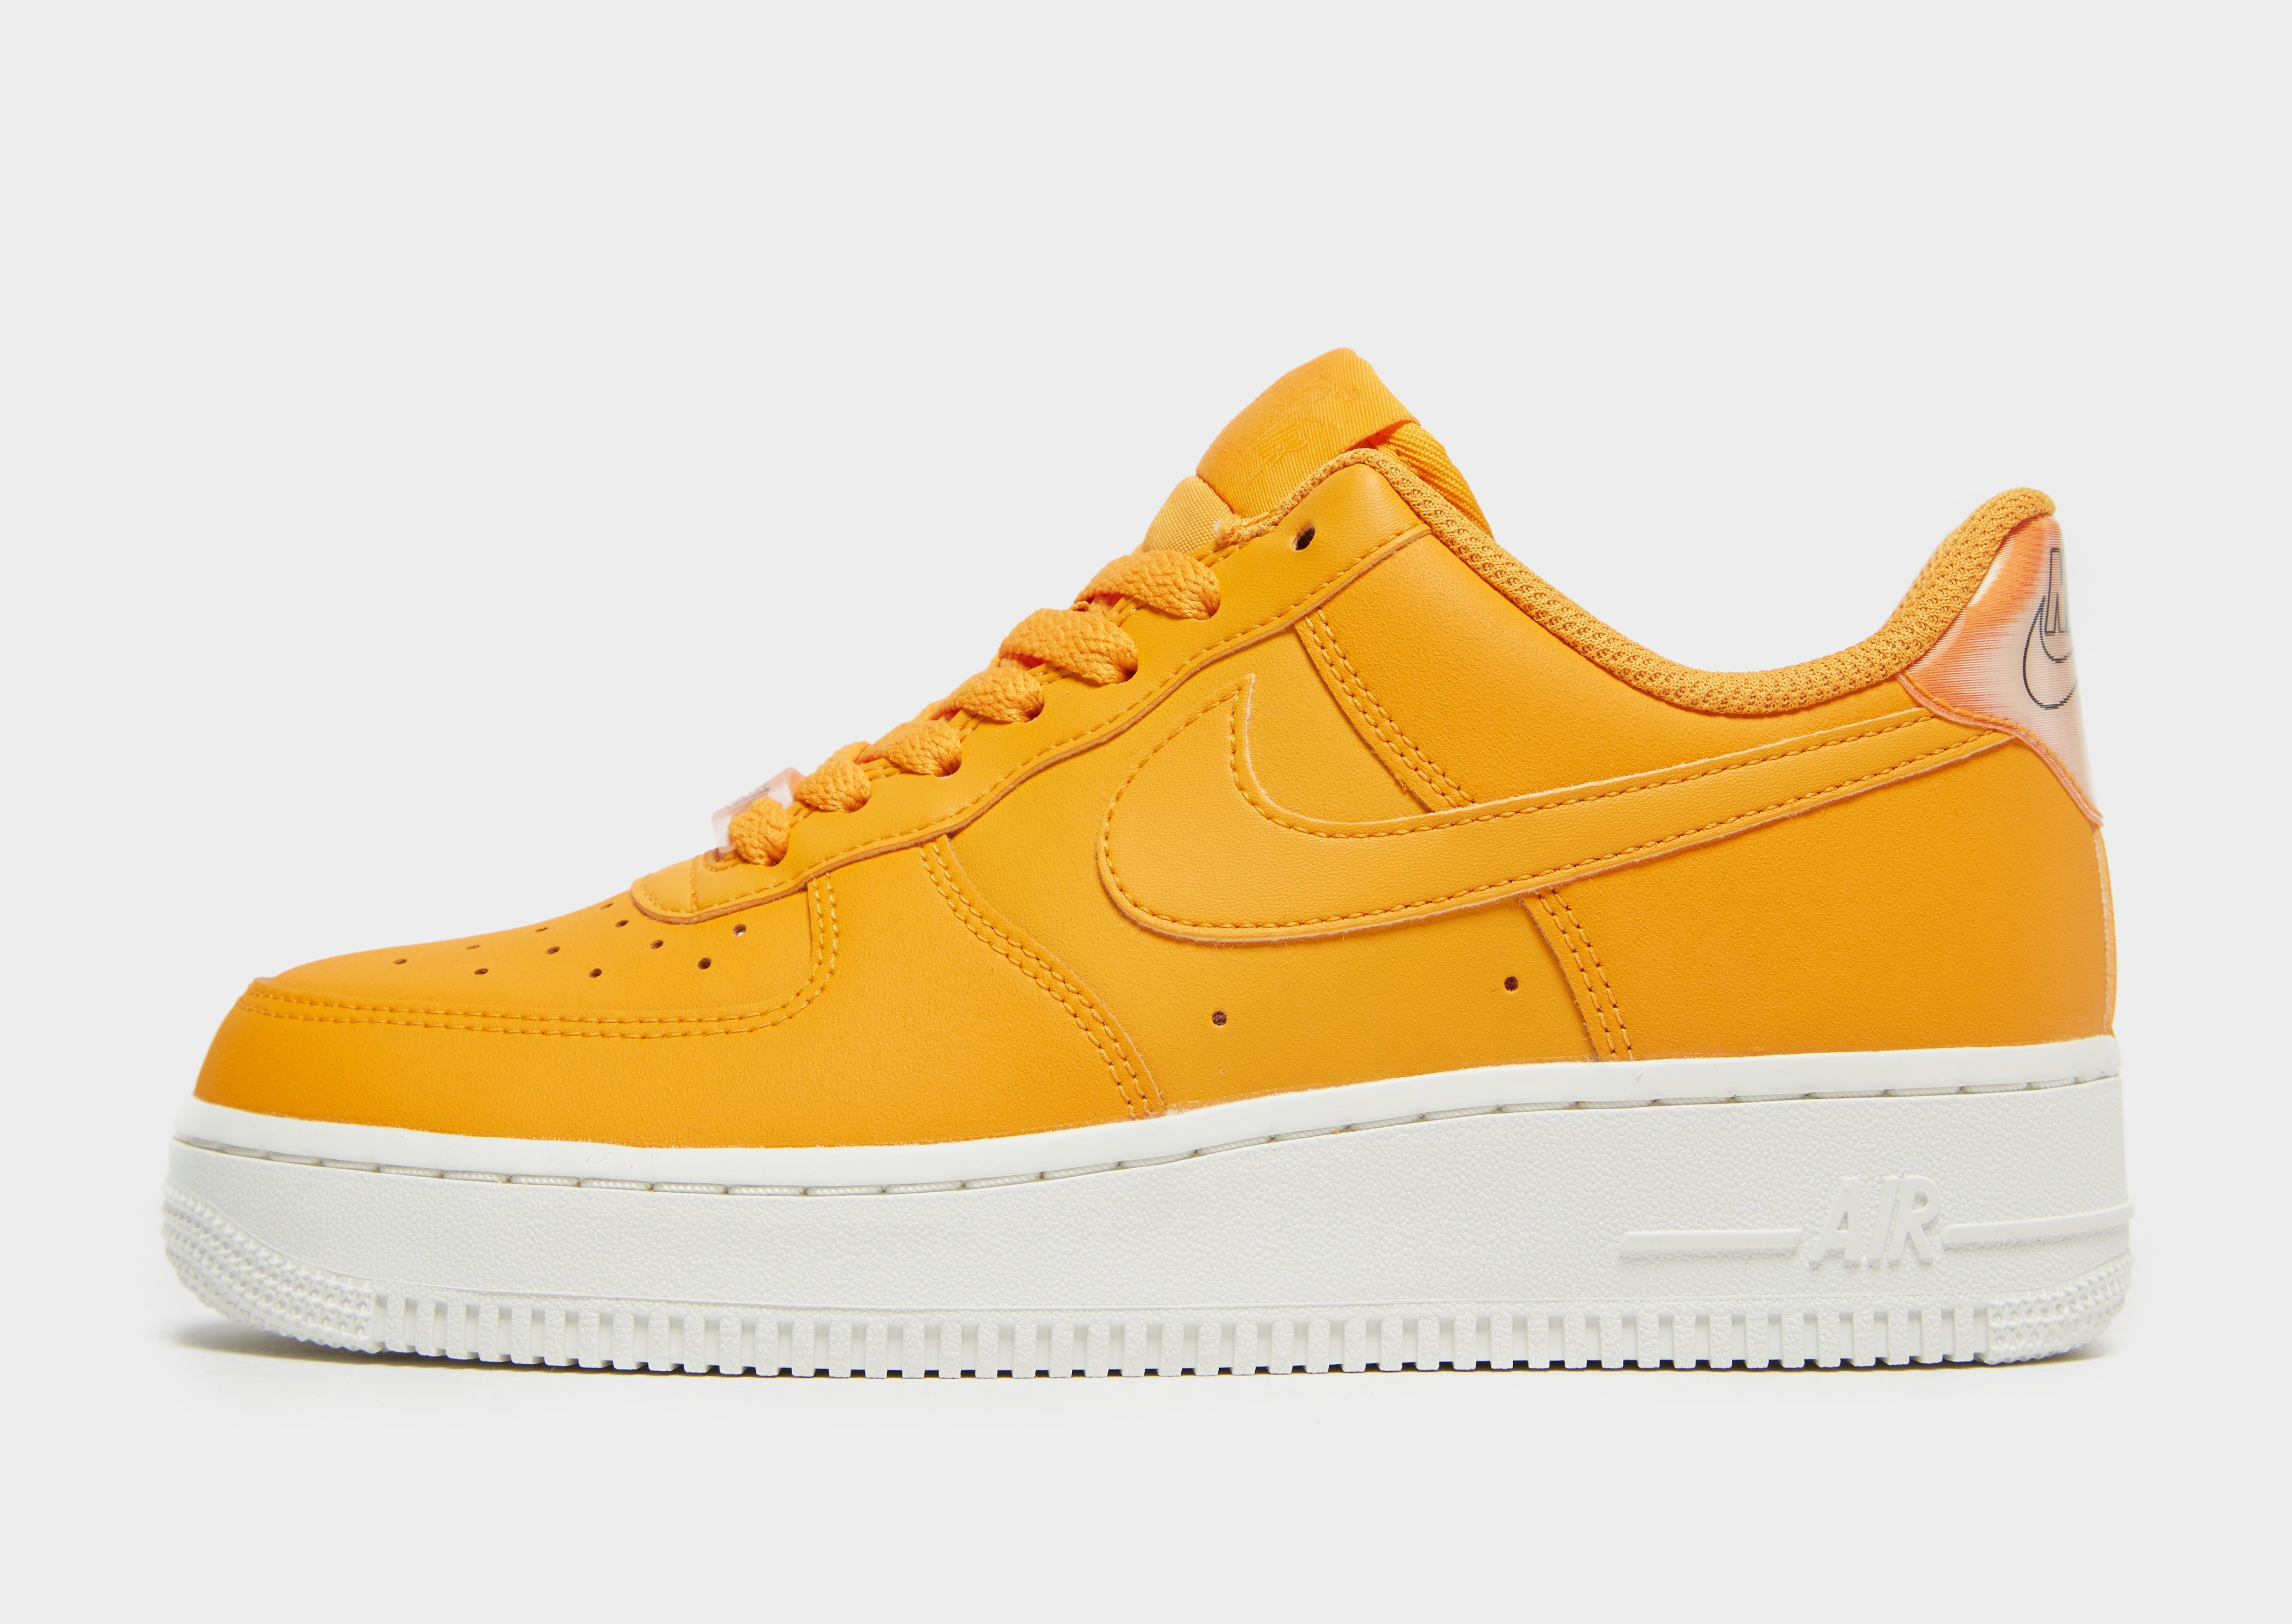 Available Now: Nike WMNS Air Force 1 '07 Essential Orange